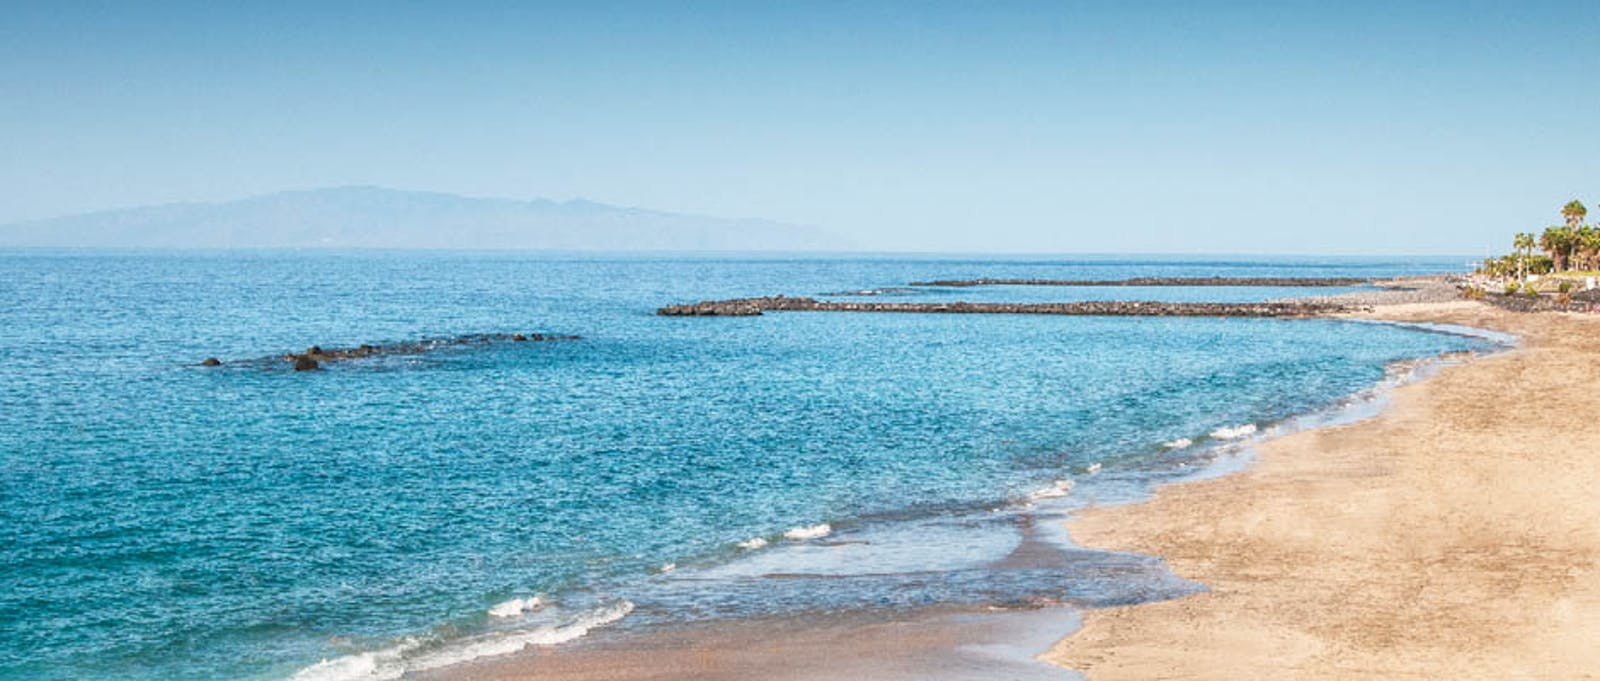 Beach view at Sheraton La Caleta Resort, Tenerife